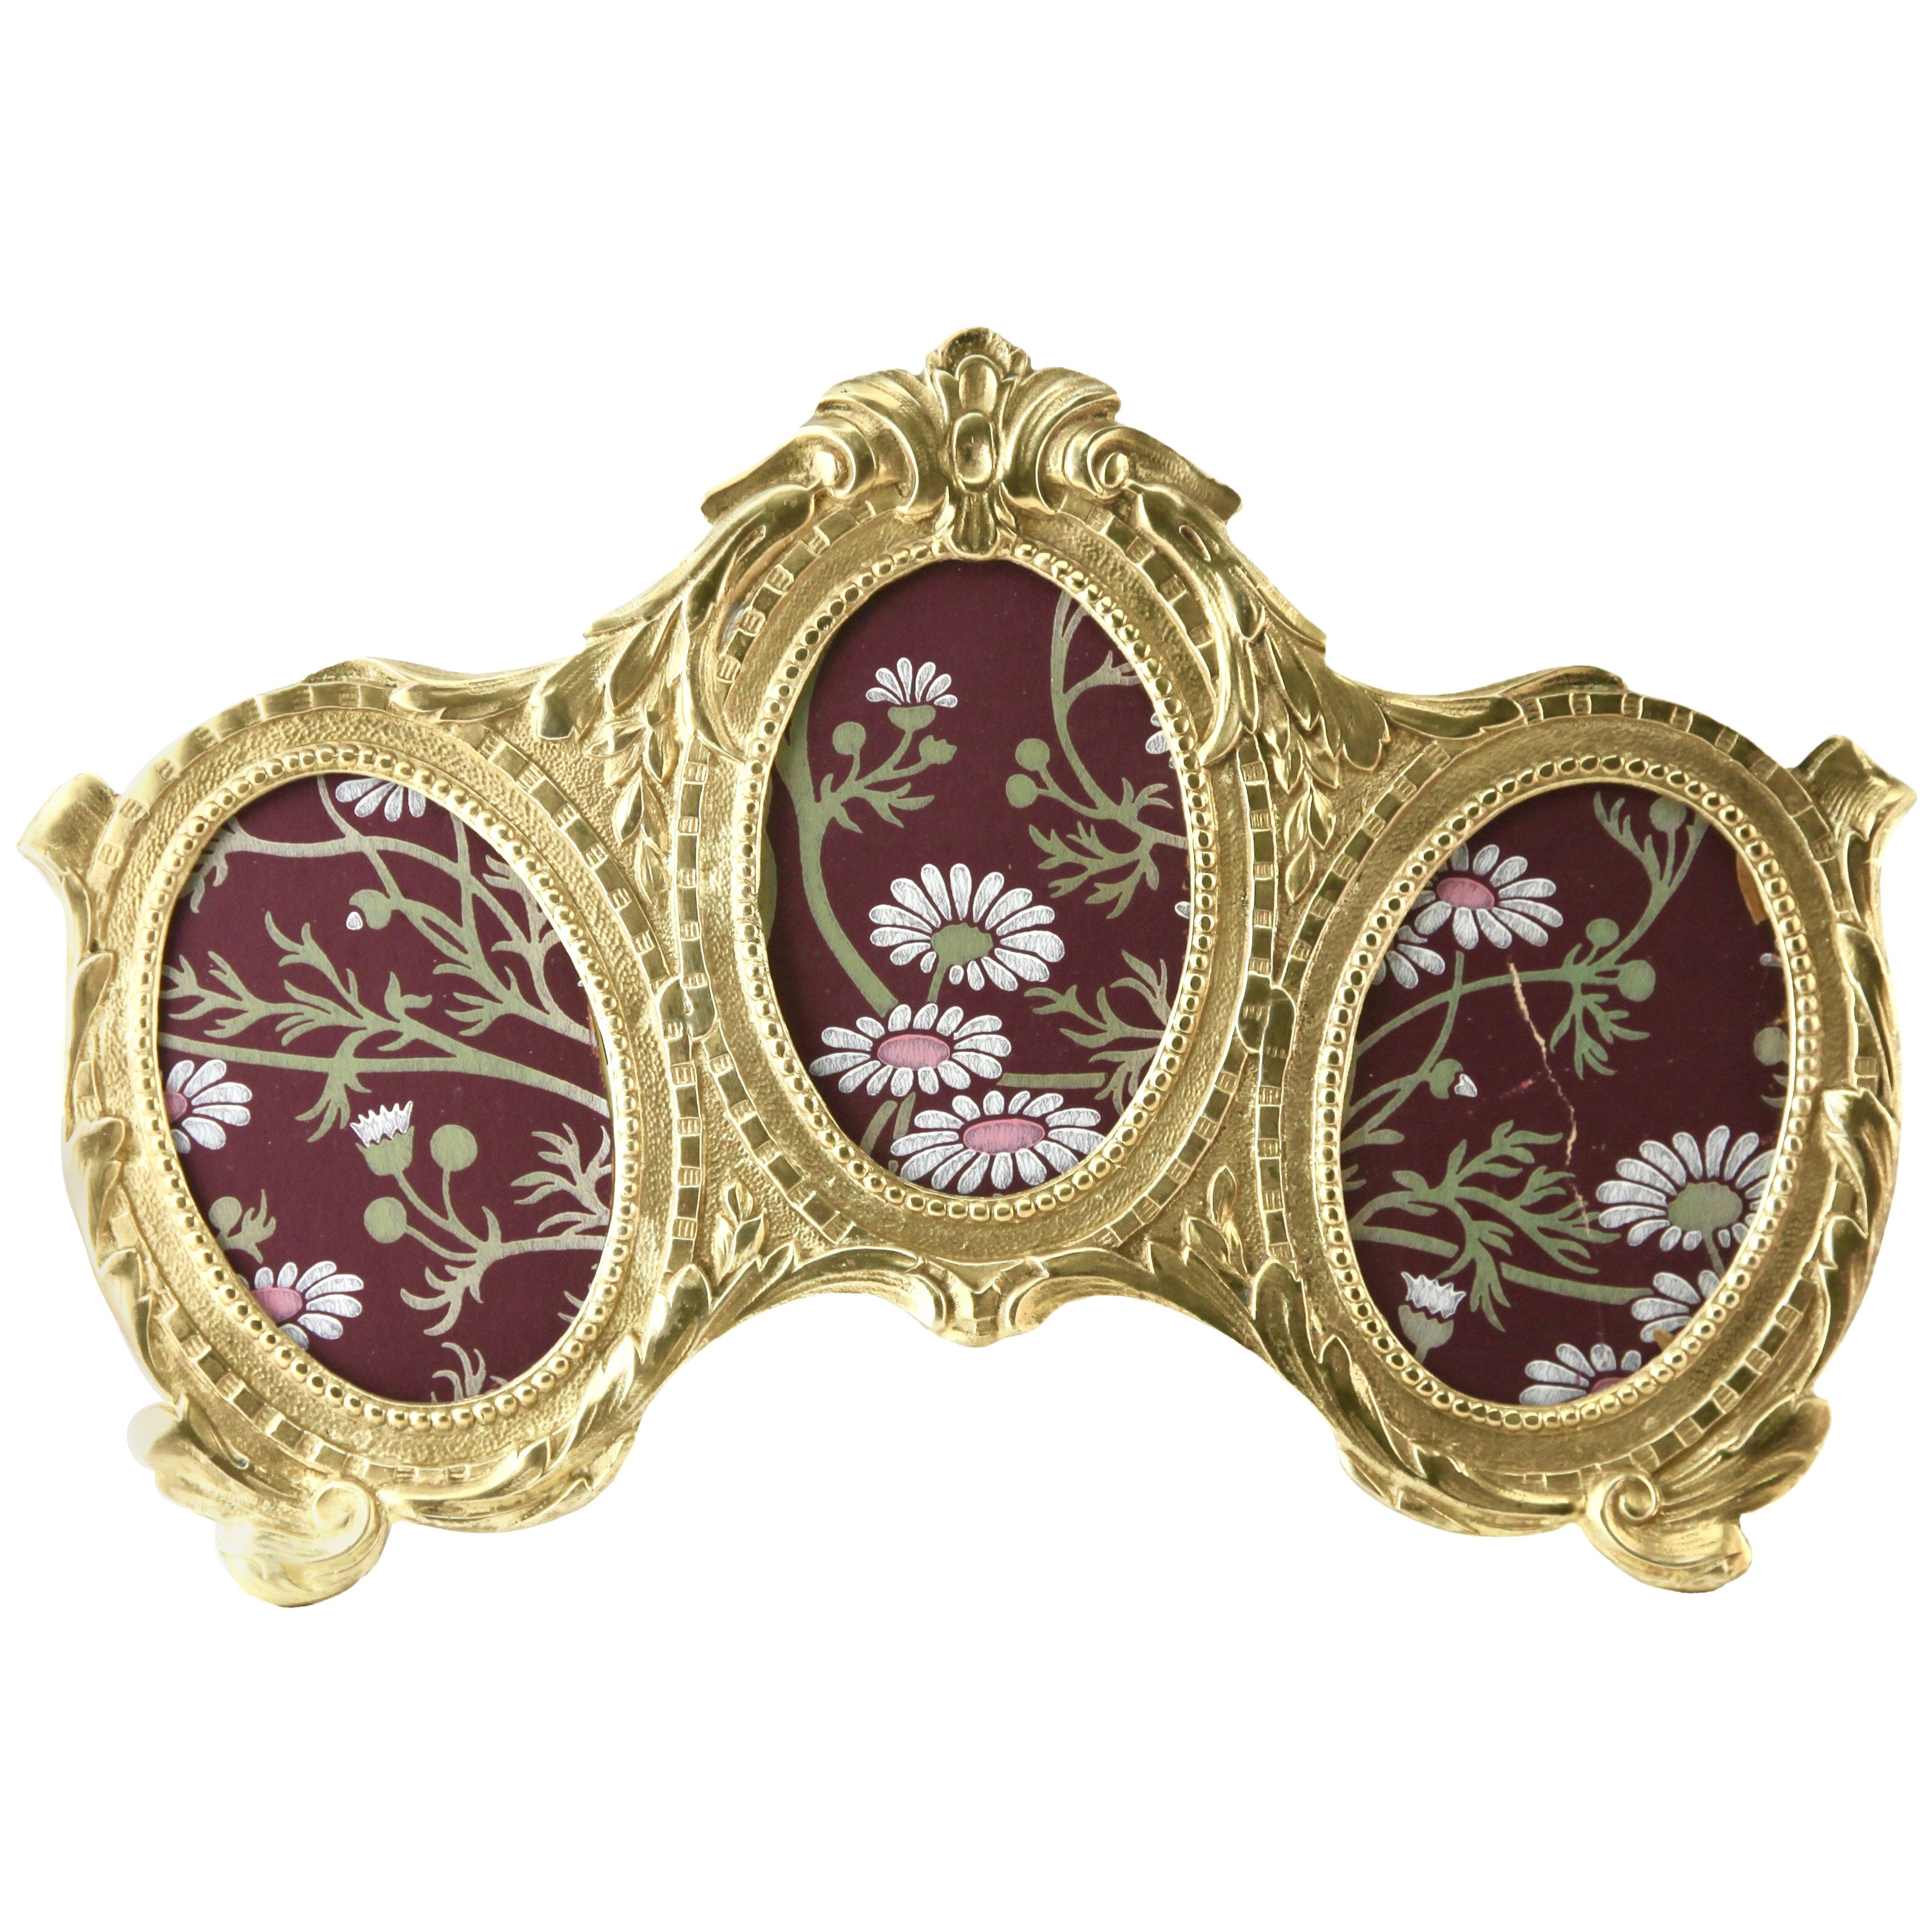 'Lover's Knot' Triple Picture Frame, Polished Brass, Made by J.H. France, 1900s